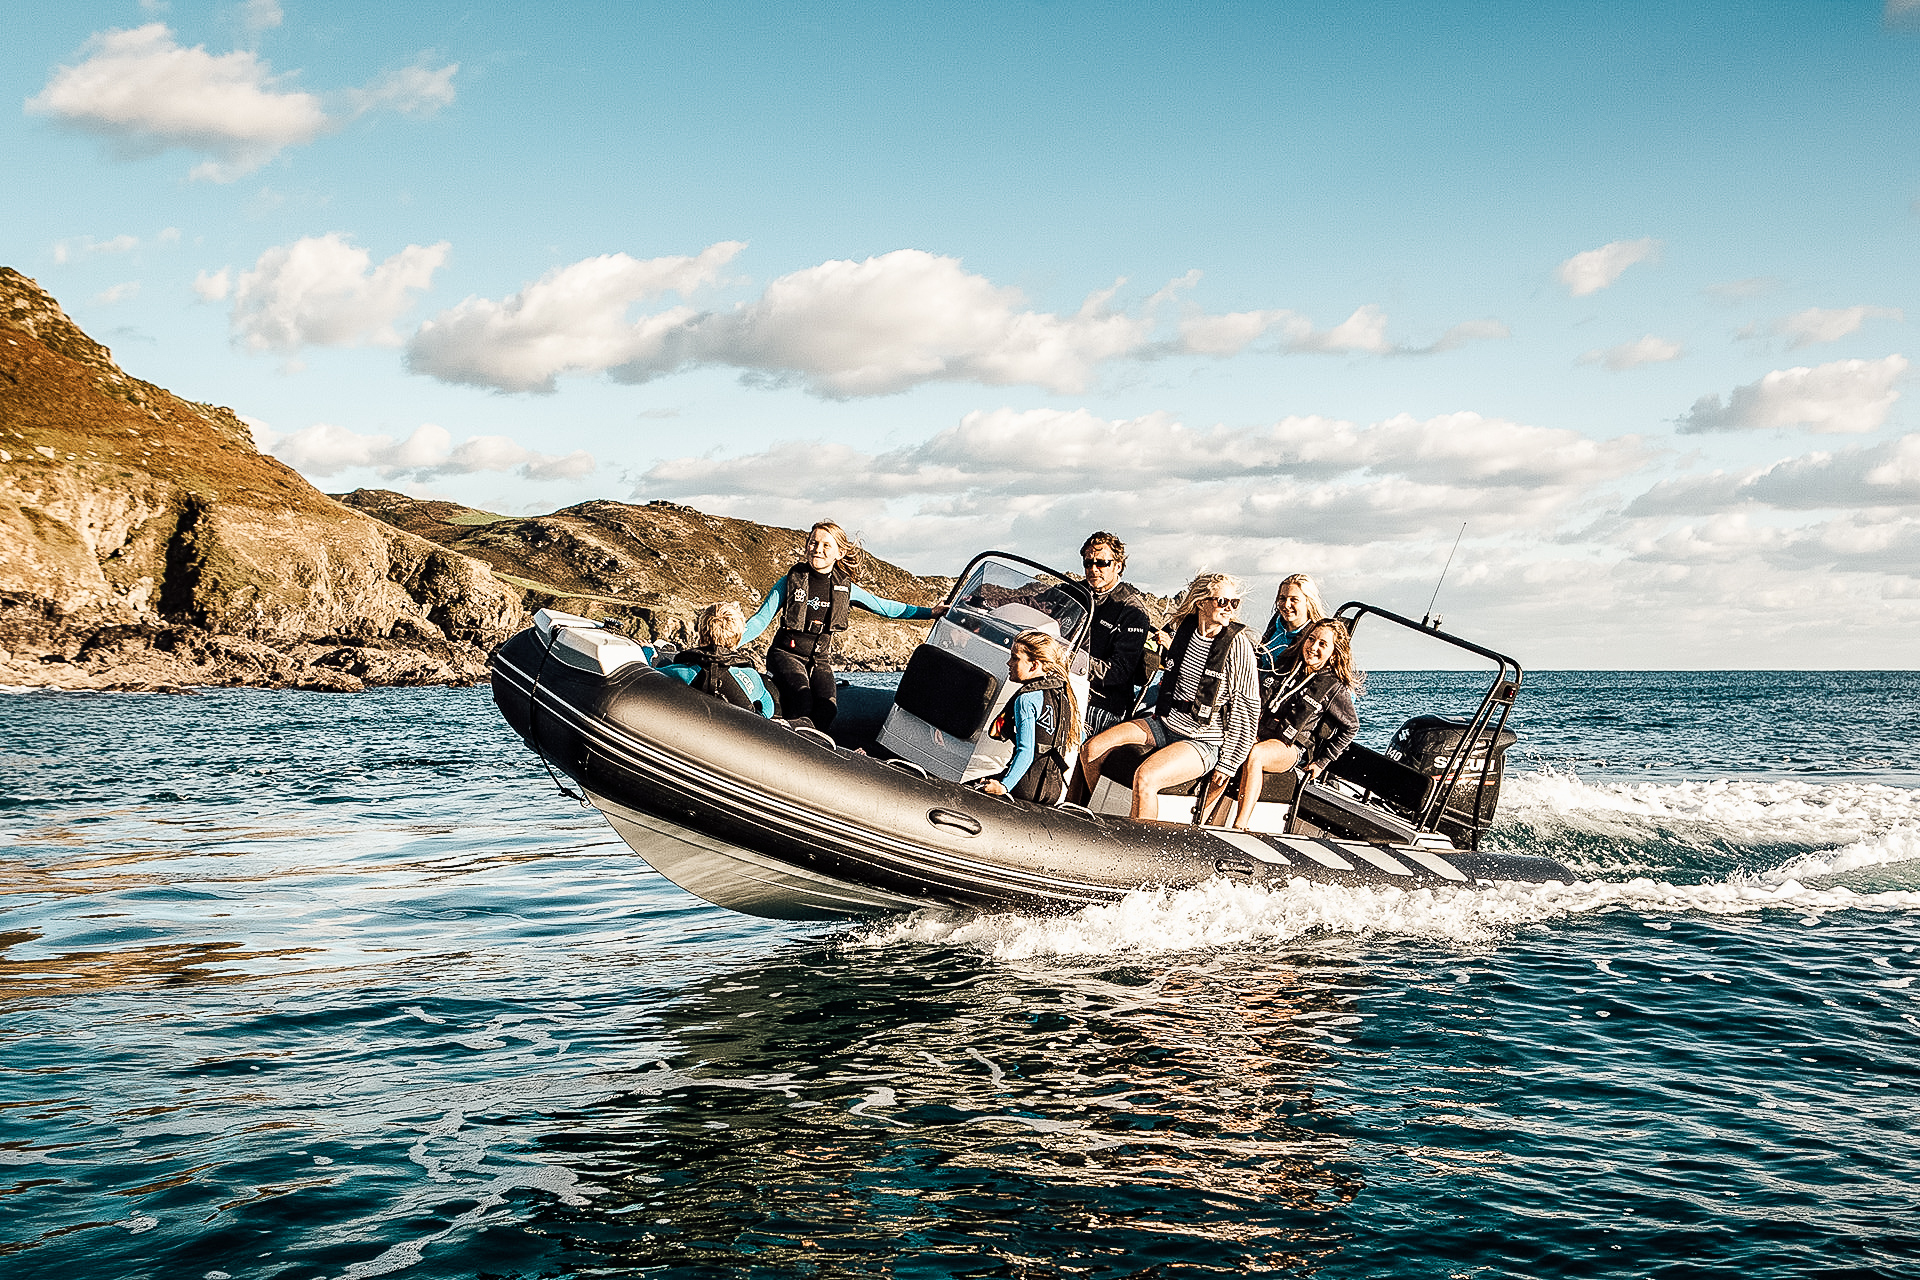 Navigator - The Navigator series redefines adventure on the water. As a recreational RIB, the BRIG Navigator series embodies the BRIG lifestyle of quality, boundary-pushing, safety and superior craftsmanship. Whether you're looking to engage your adrenaline with water sports or introduce your kids to the thrill of the water, this is the high-performance RIB for your adventures.Navigator 730Navigator 610Navigator 570Navigator 520Navigator 485